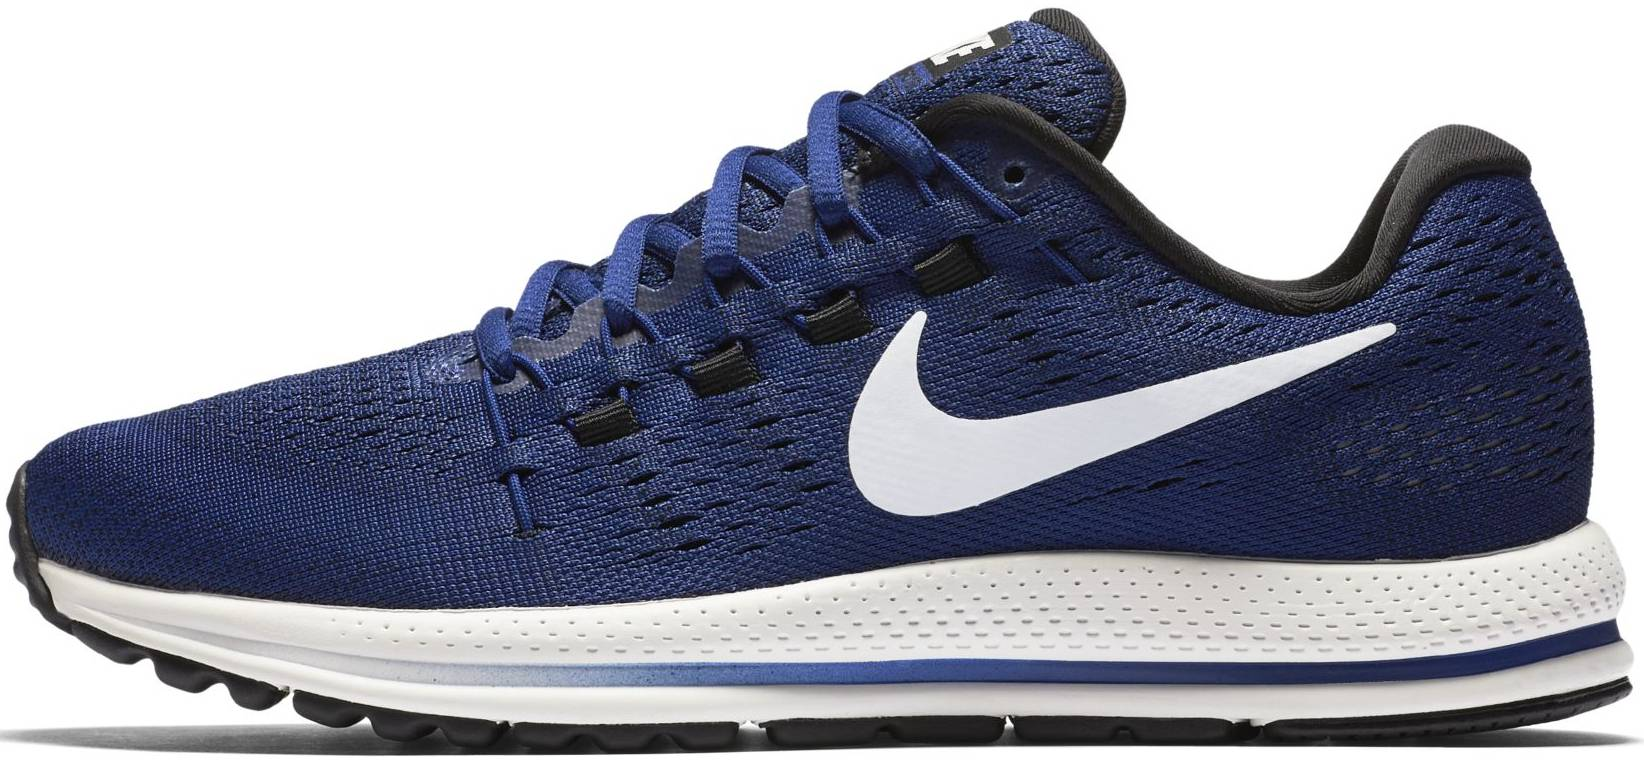 papi Frase Lucro  Nike Air Zoom Vomero 12 - Deals ($107), Facts, Reviews (2021) | RunRepeat